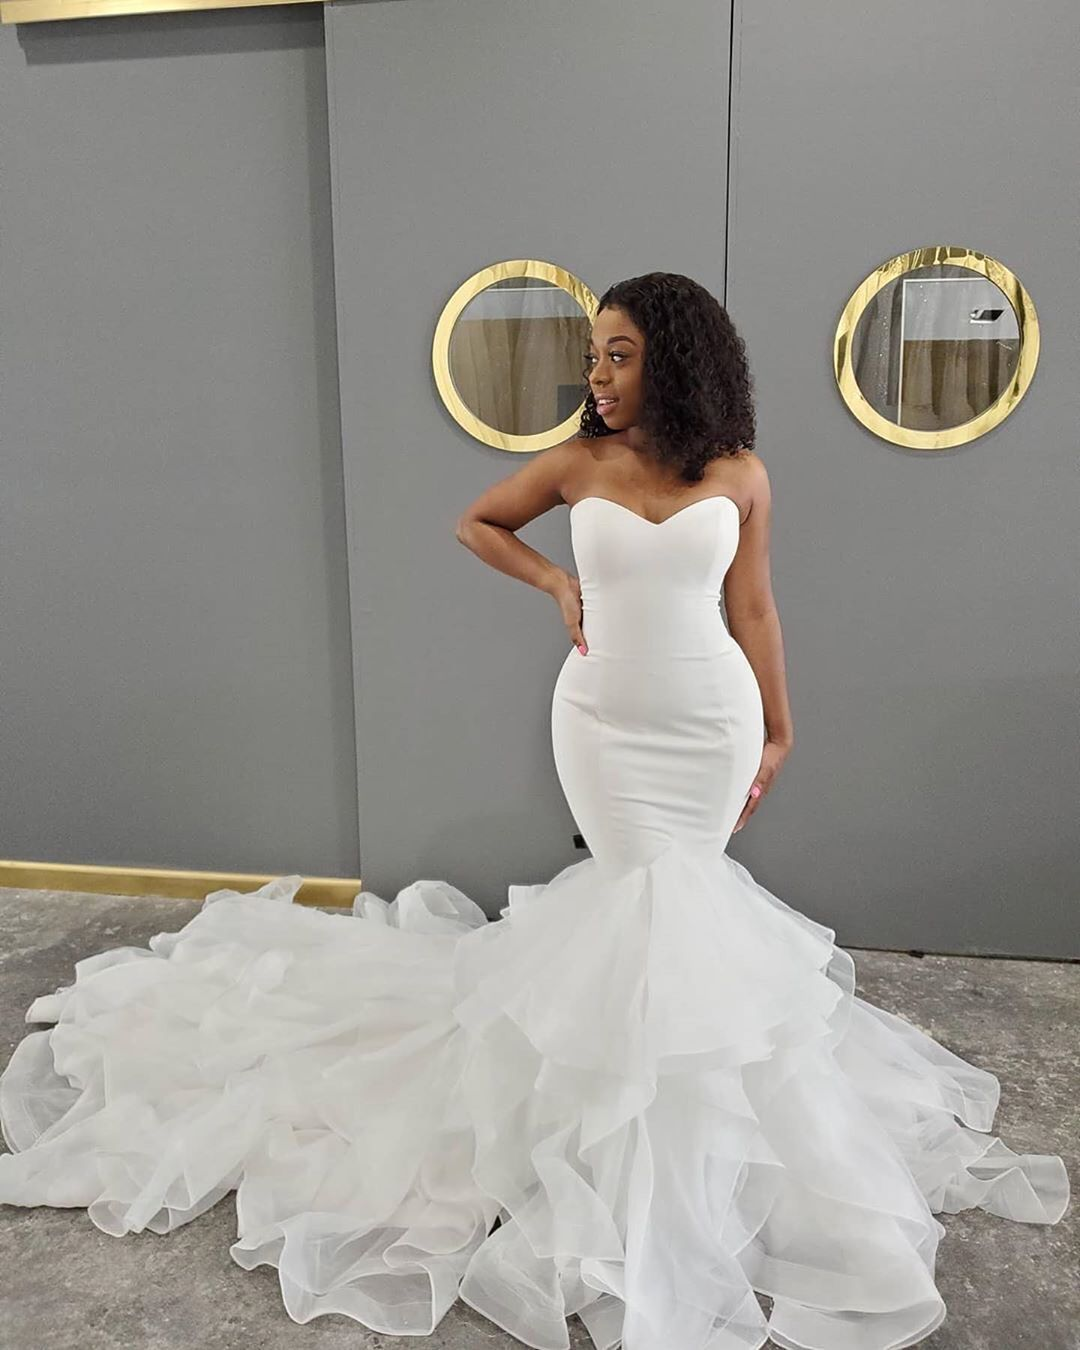 Weddings Onpoint S Instagram Post Stunning Love This Gown With Or Without The Bling Go Ball Gowns Wedding Cute Wedding Dress Gorgeous Wedding Dress [ 1350 x 1080 Pixel ]